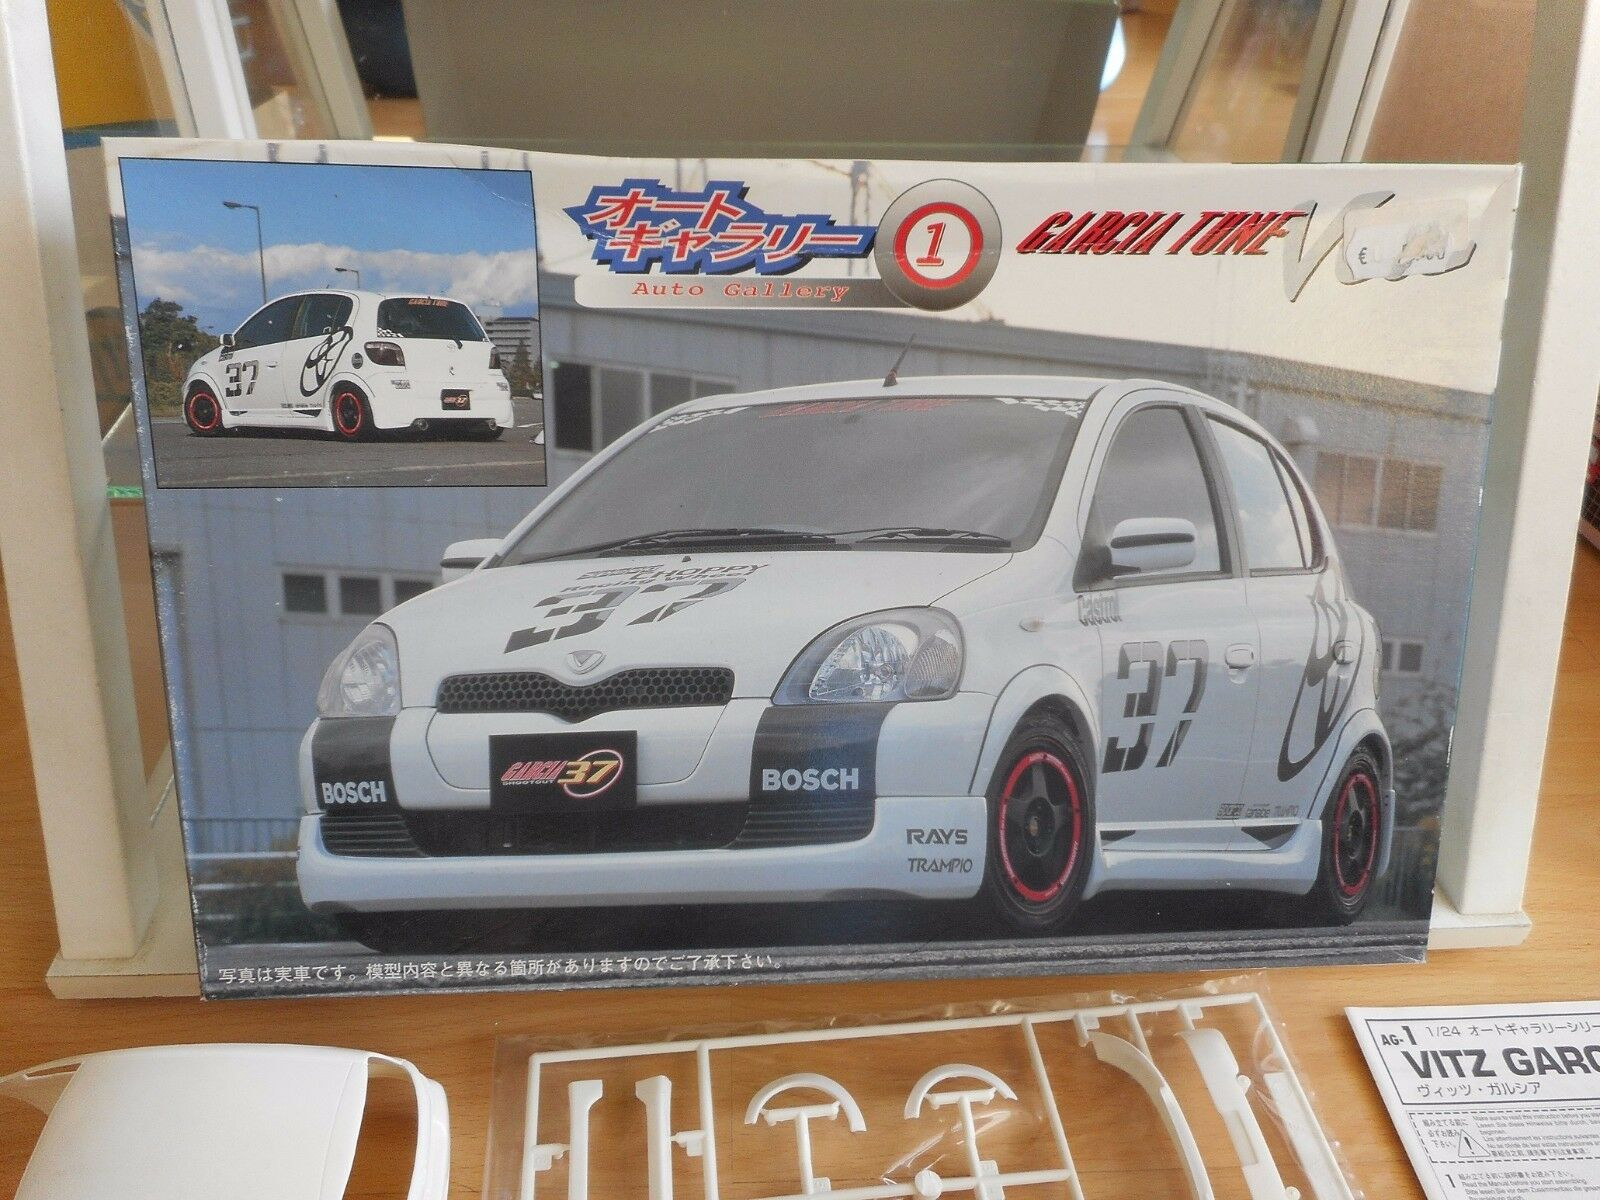 Modelkit Fujimi Toyota Vitz Garcia Tune on 1 24 in Box